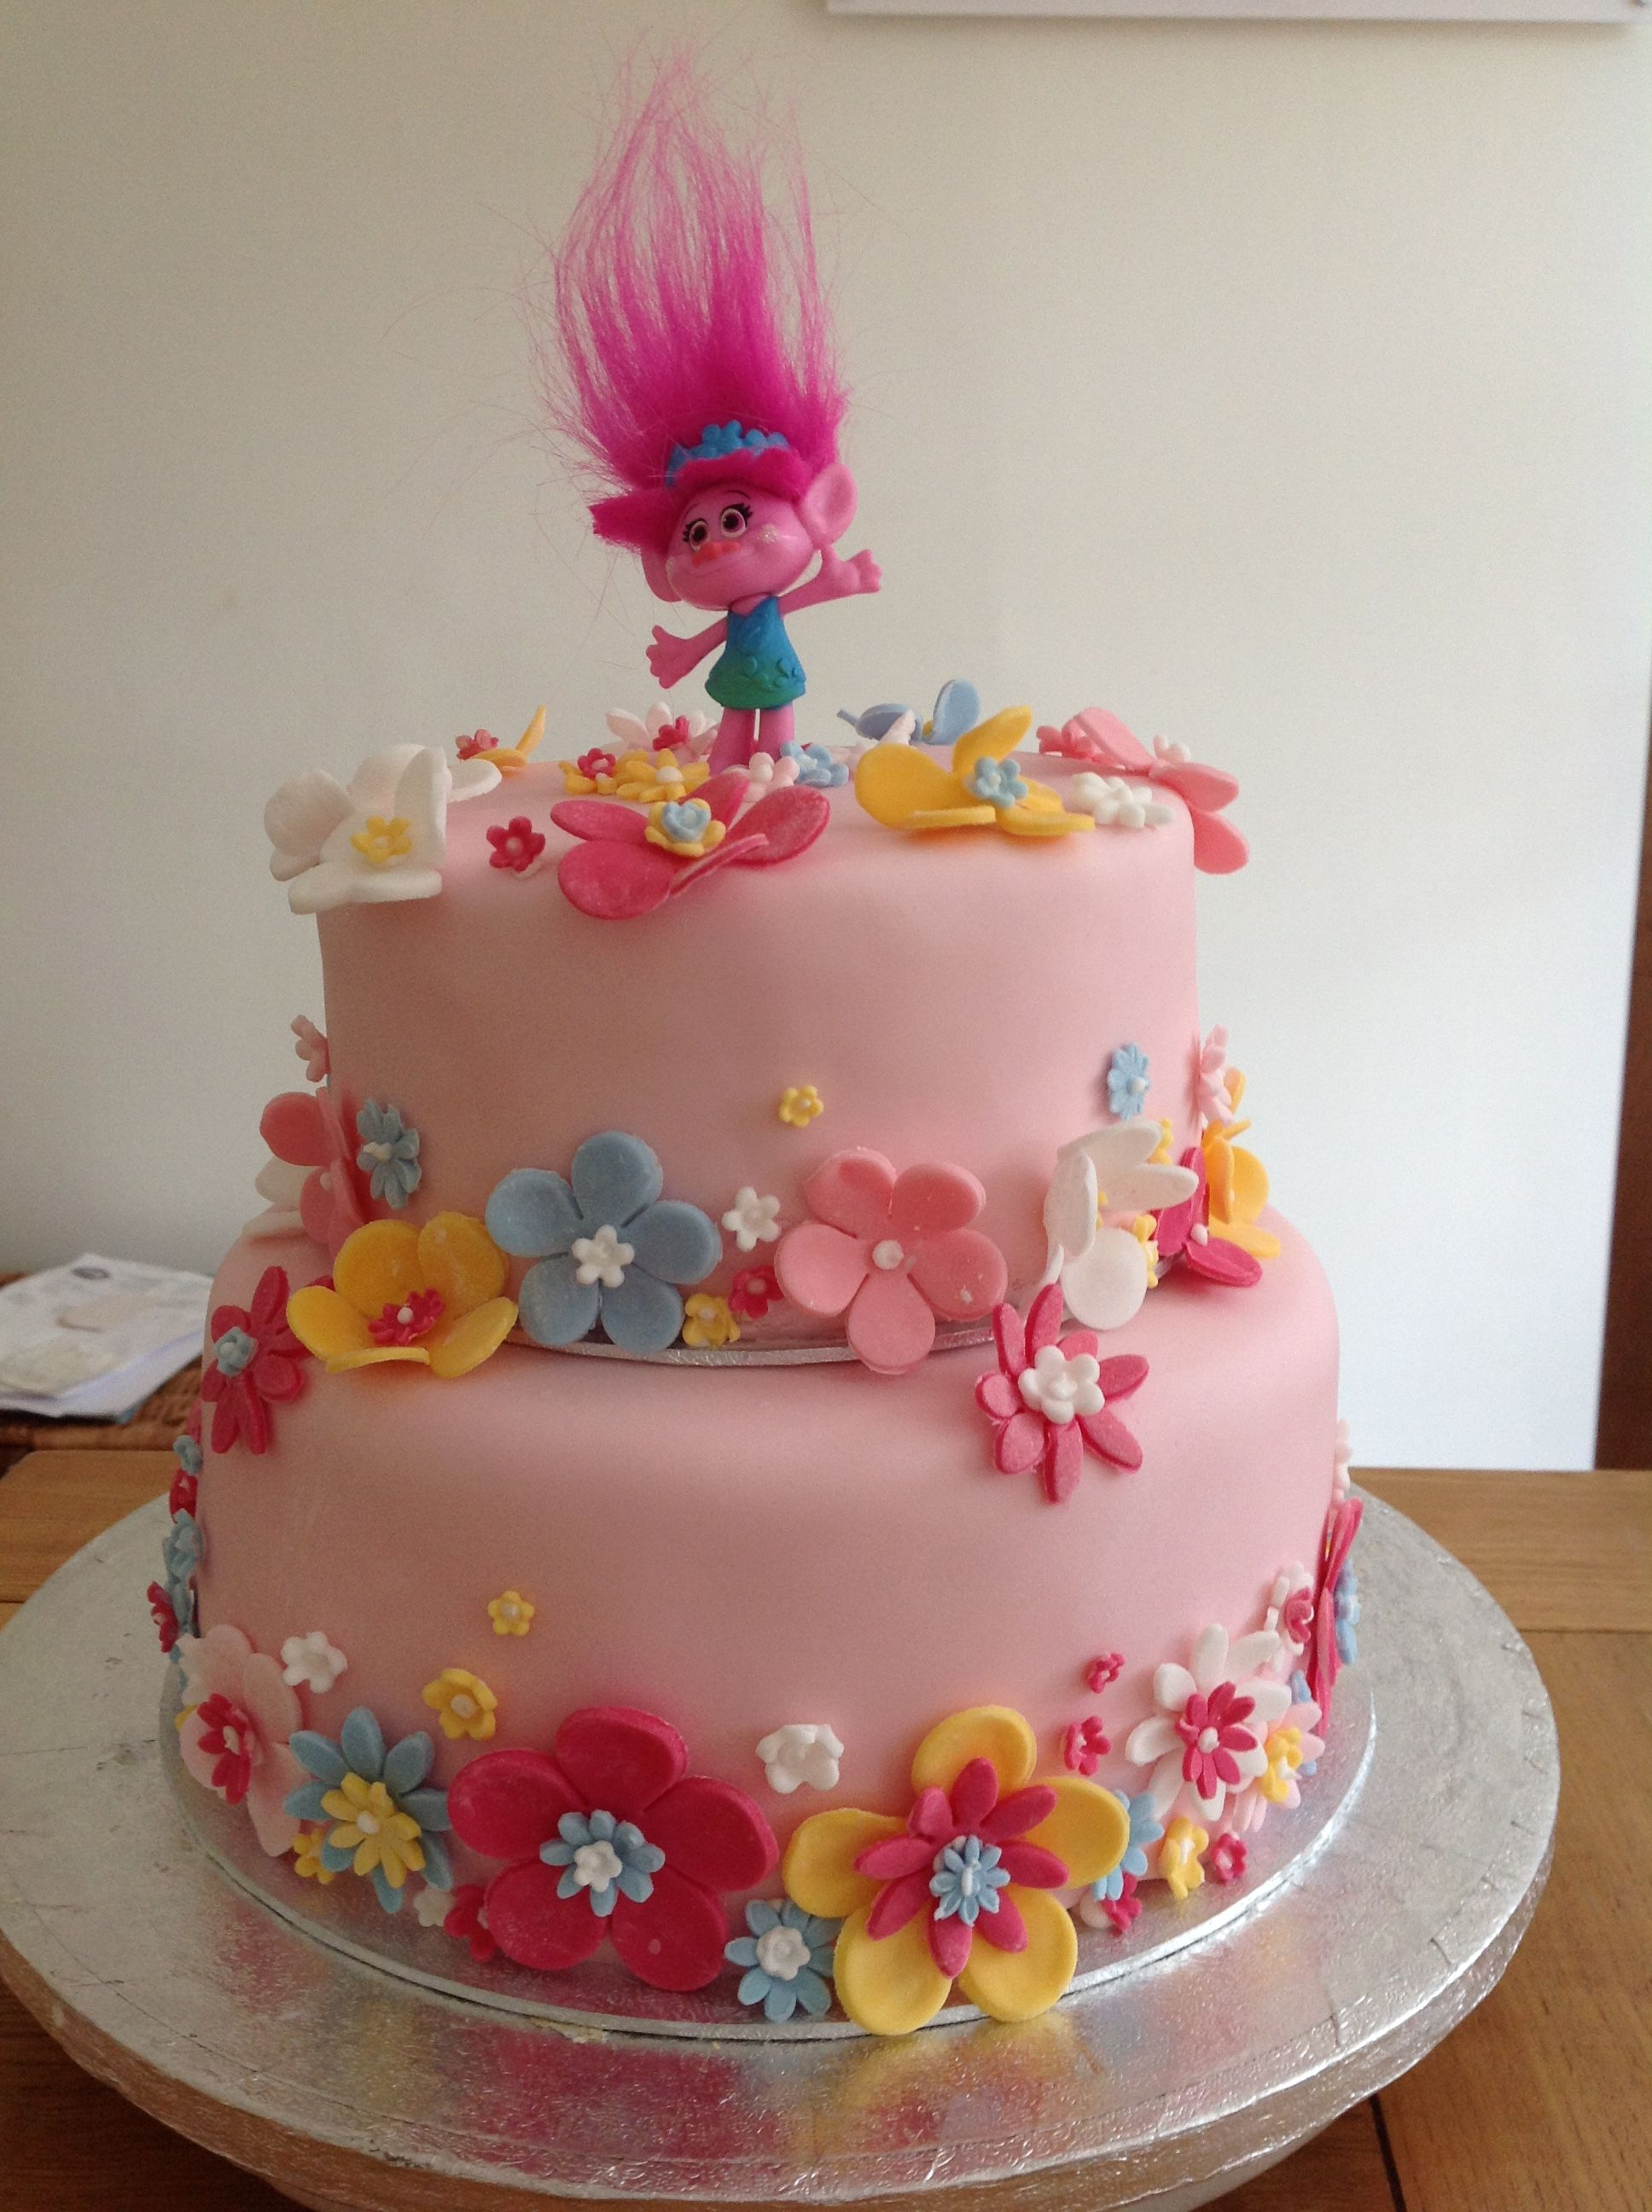 My Version Of A Princess Poppy Cake Amy S 6th Borthday With